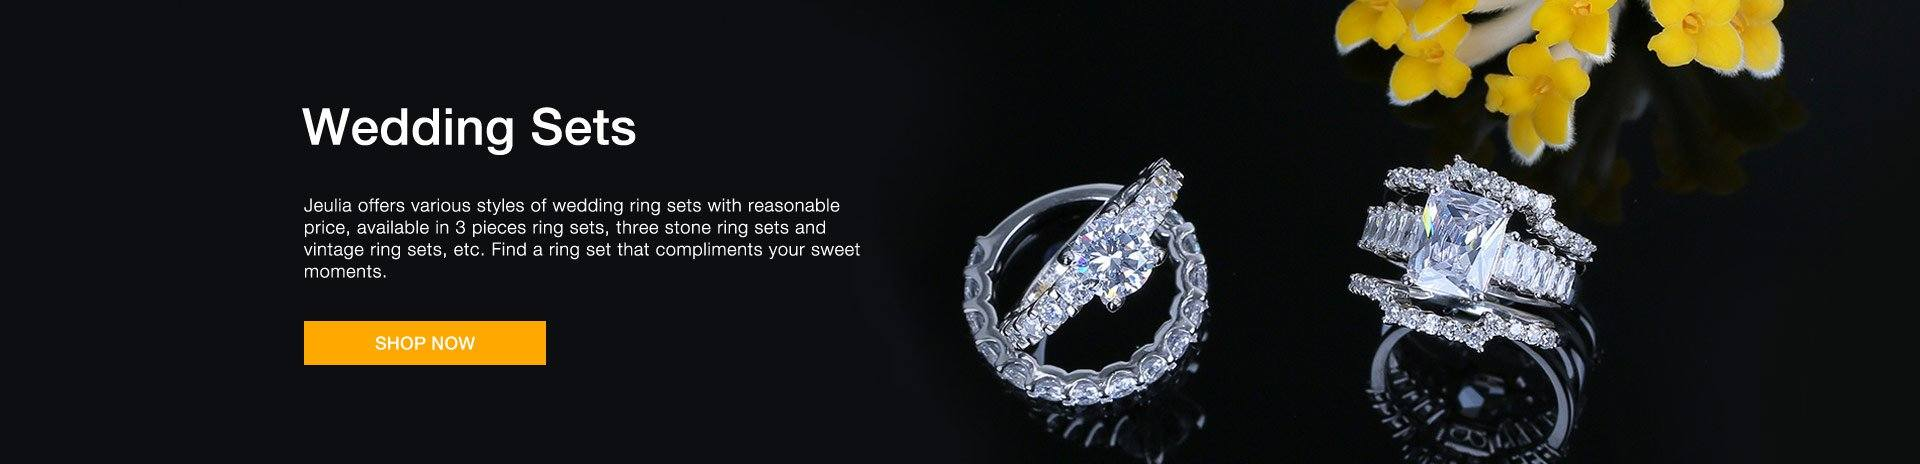 engagement rings - Wedding Ring Shop